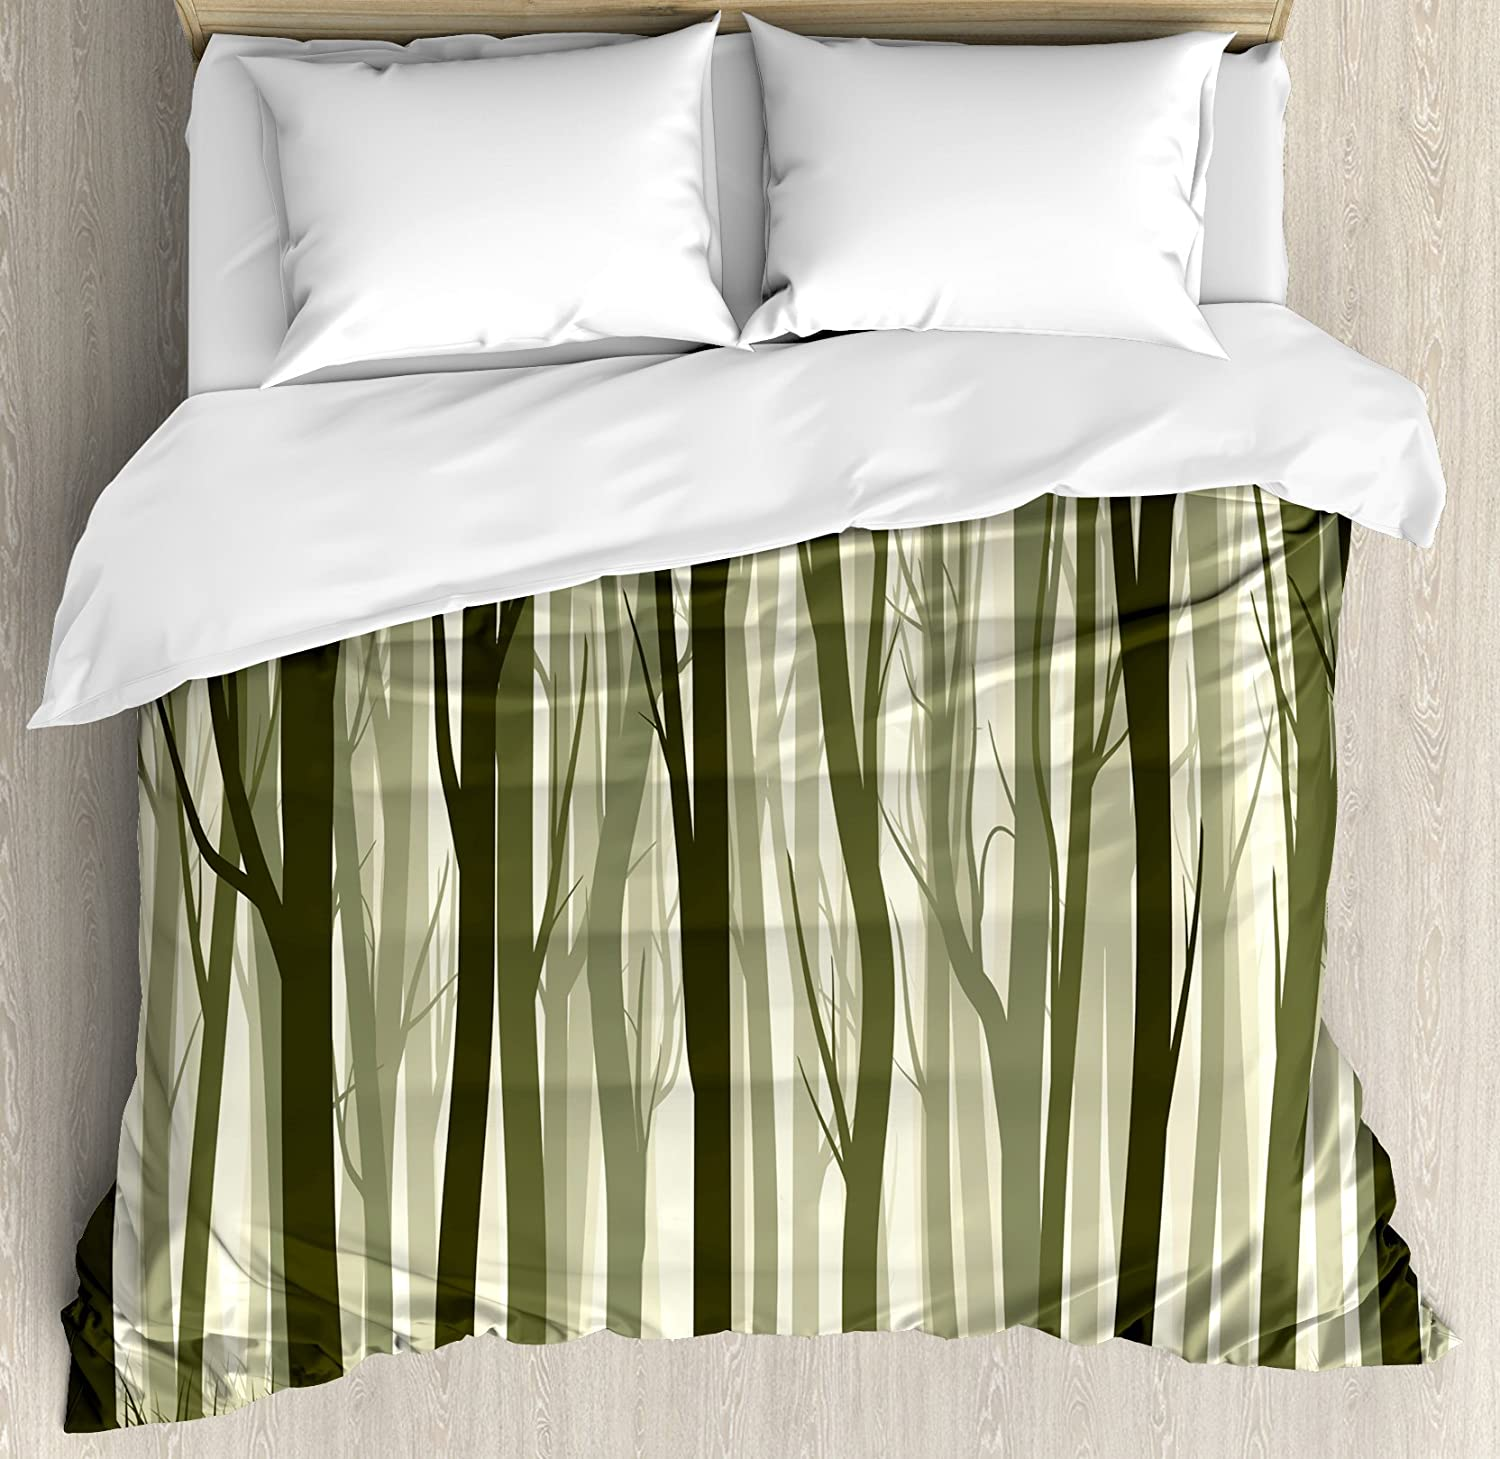 Ambesonne Forest Duvet Finally popular brand Cover Set Themed Mother Illustrat Nature low-pricing